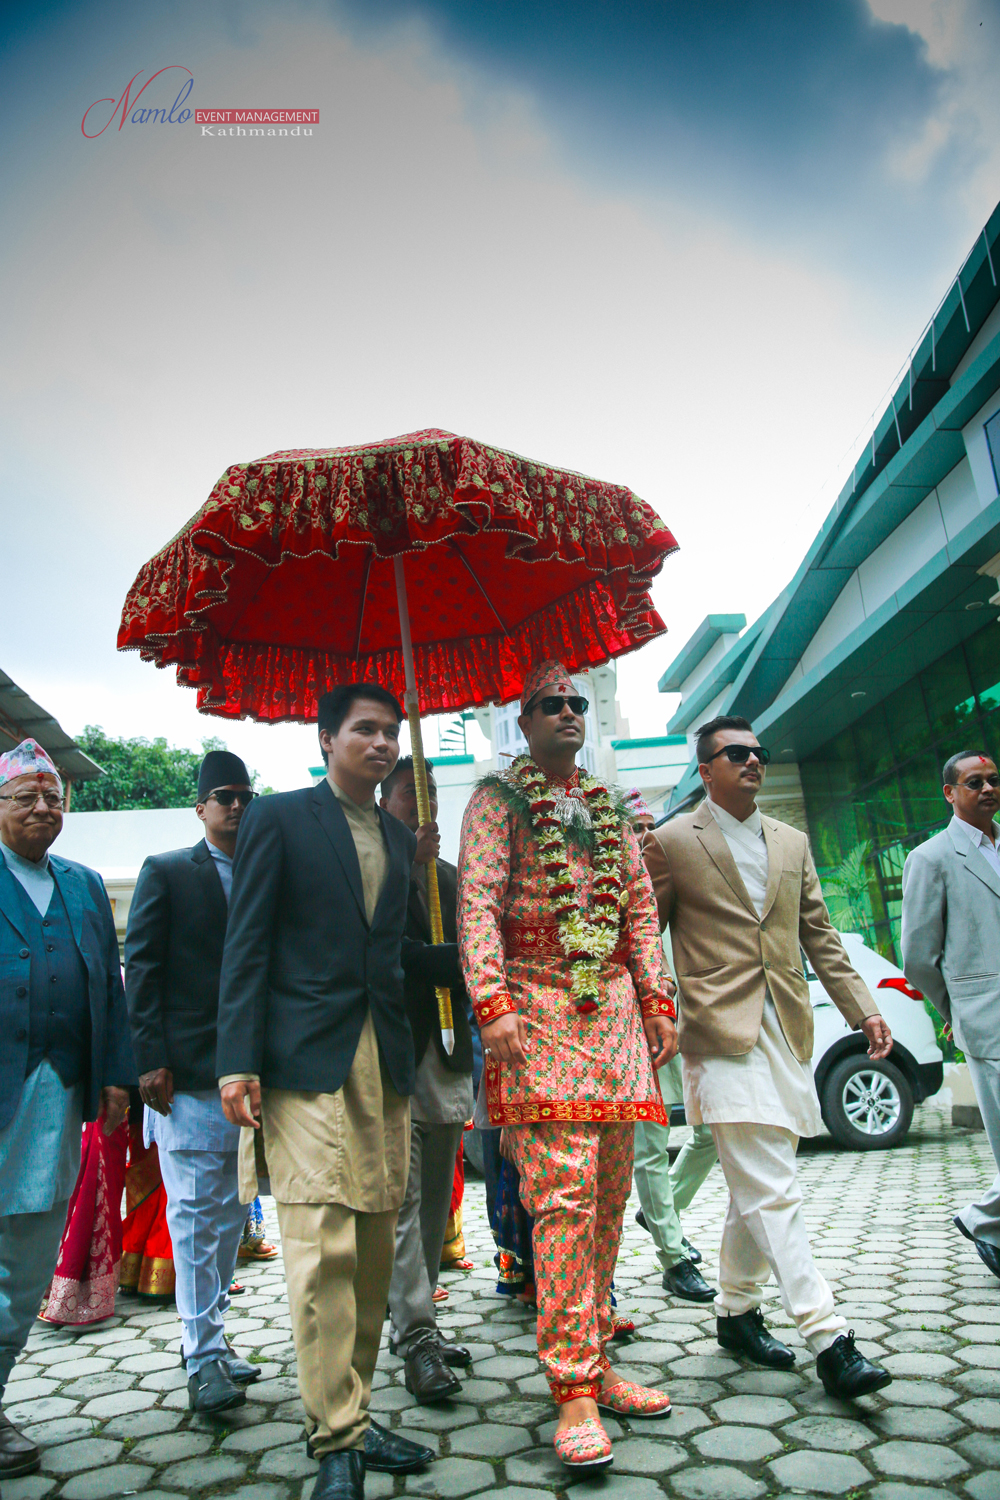 Namlo event management precisely planned forever remembered kathmandu wedding junglespirit Gallery